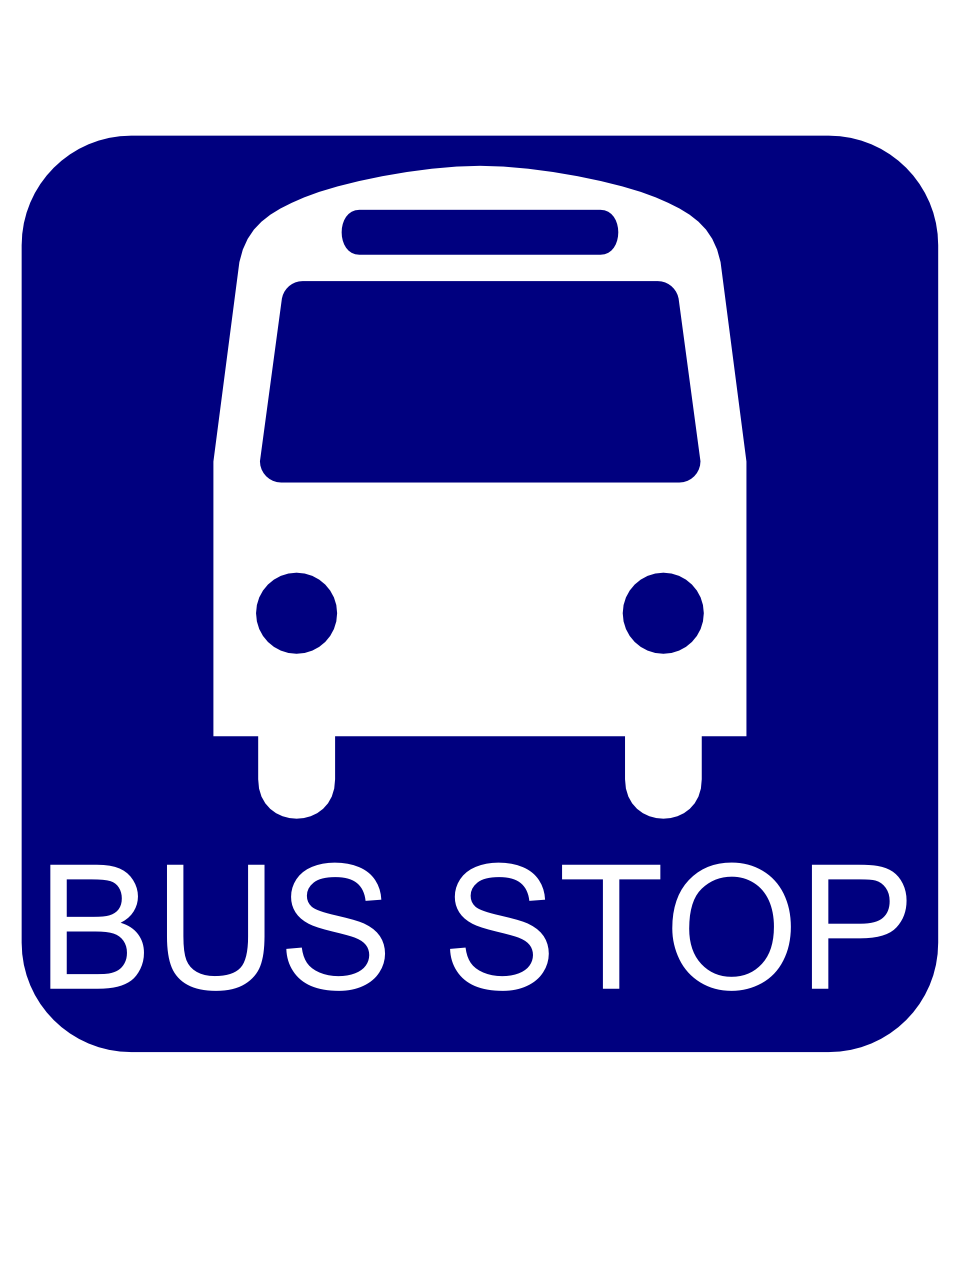 Singapore Bus Transit (SBS)